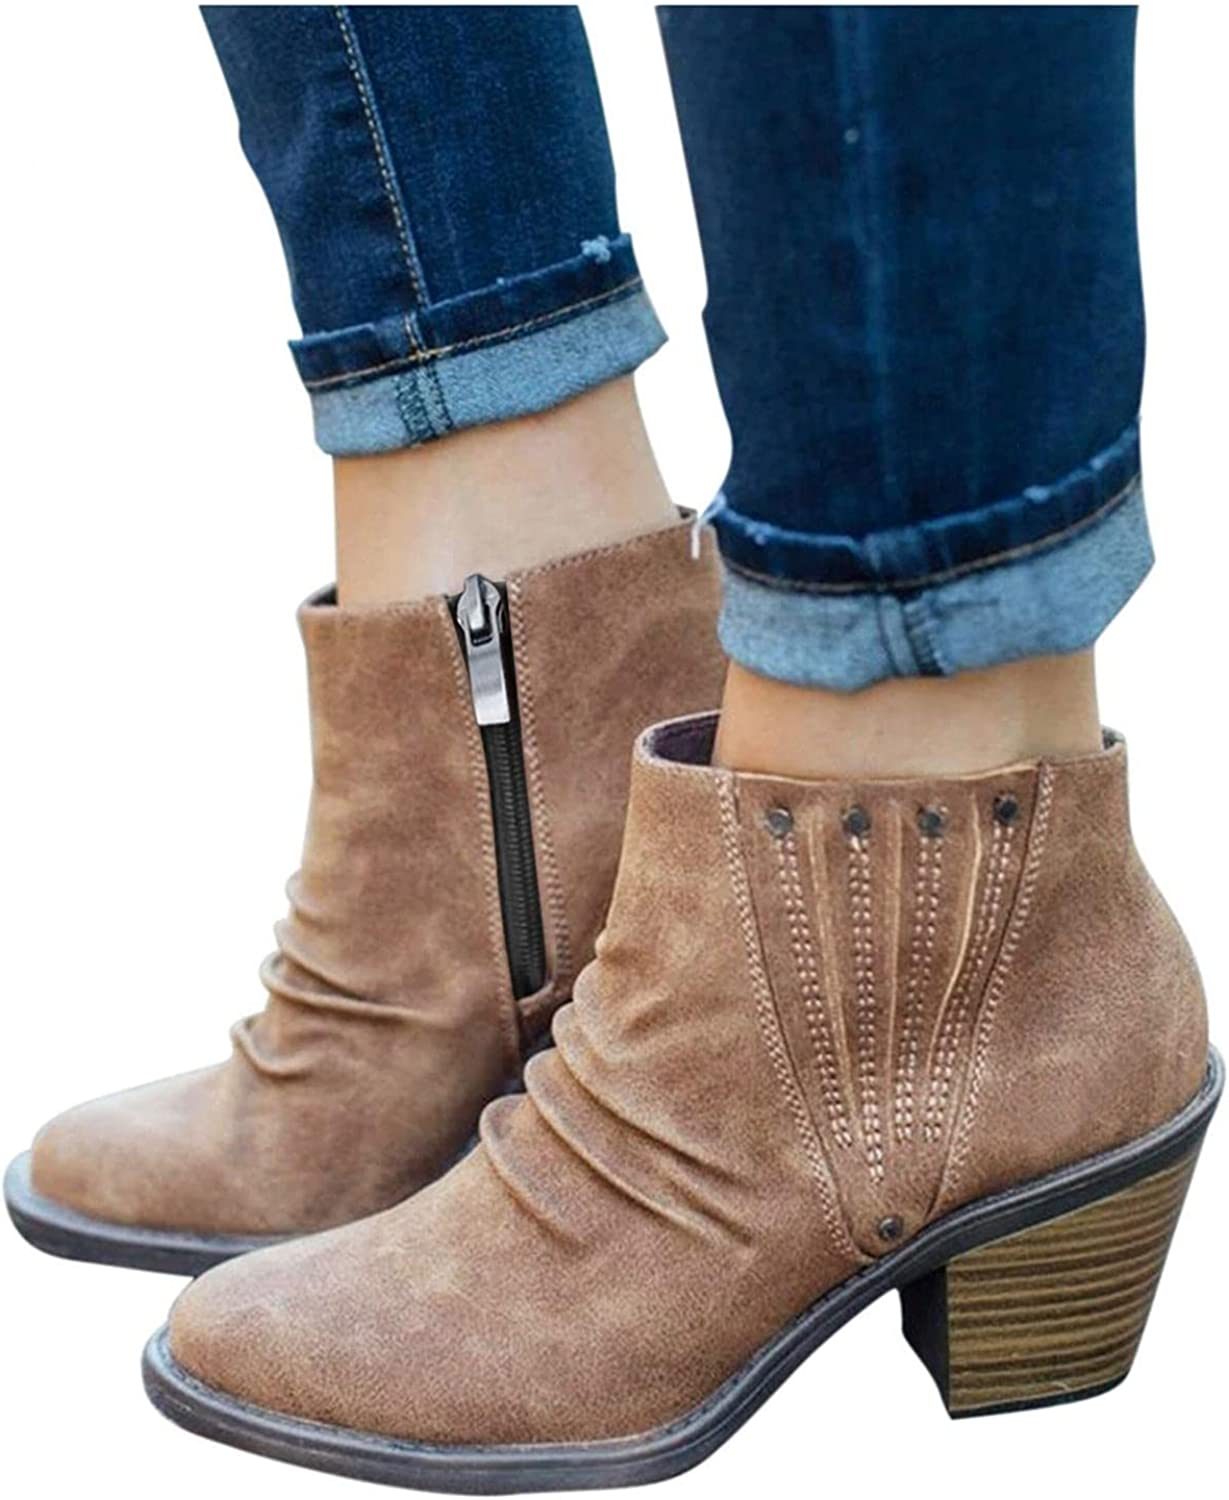 UOCUFY Boots for Women Special sale item Cowgirl [Alternative dealer] Ankle Wedge Low Hee Booties Short